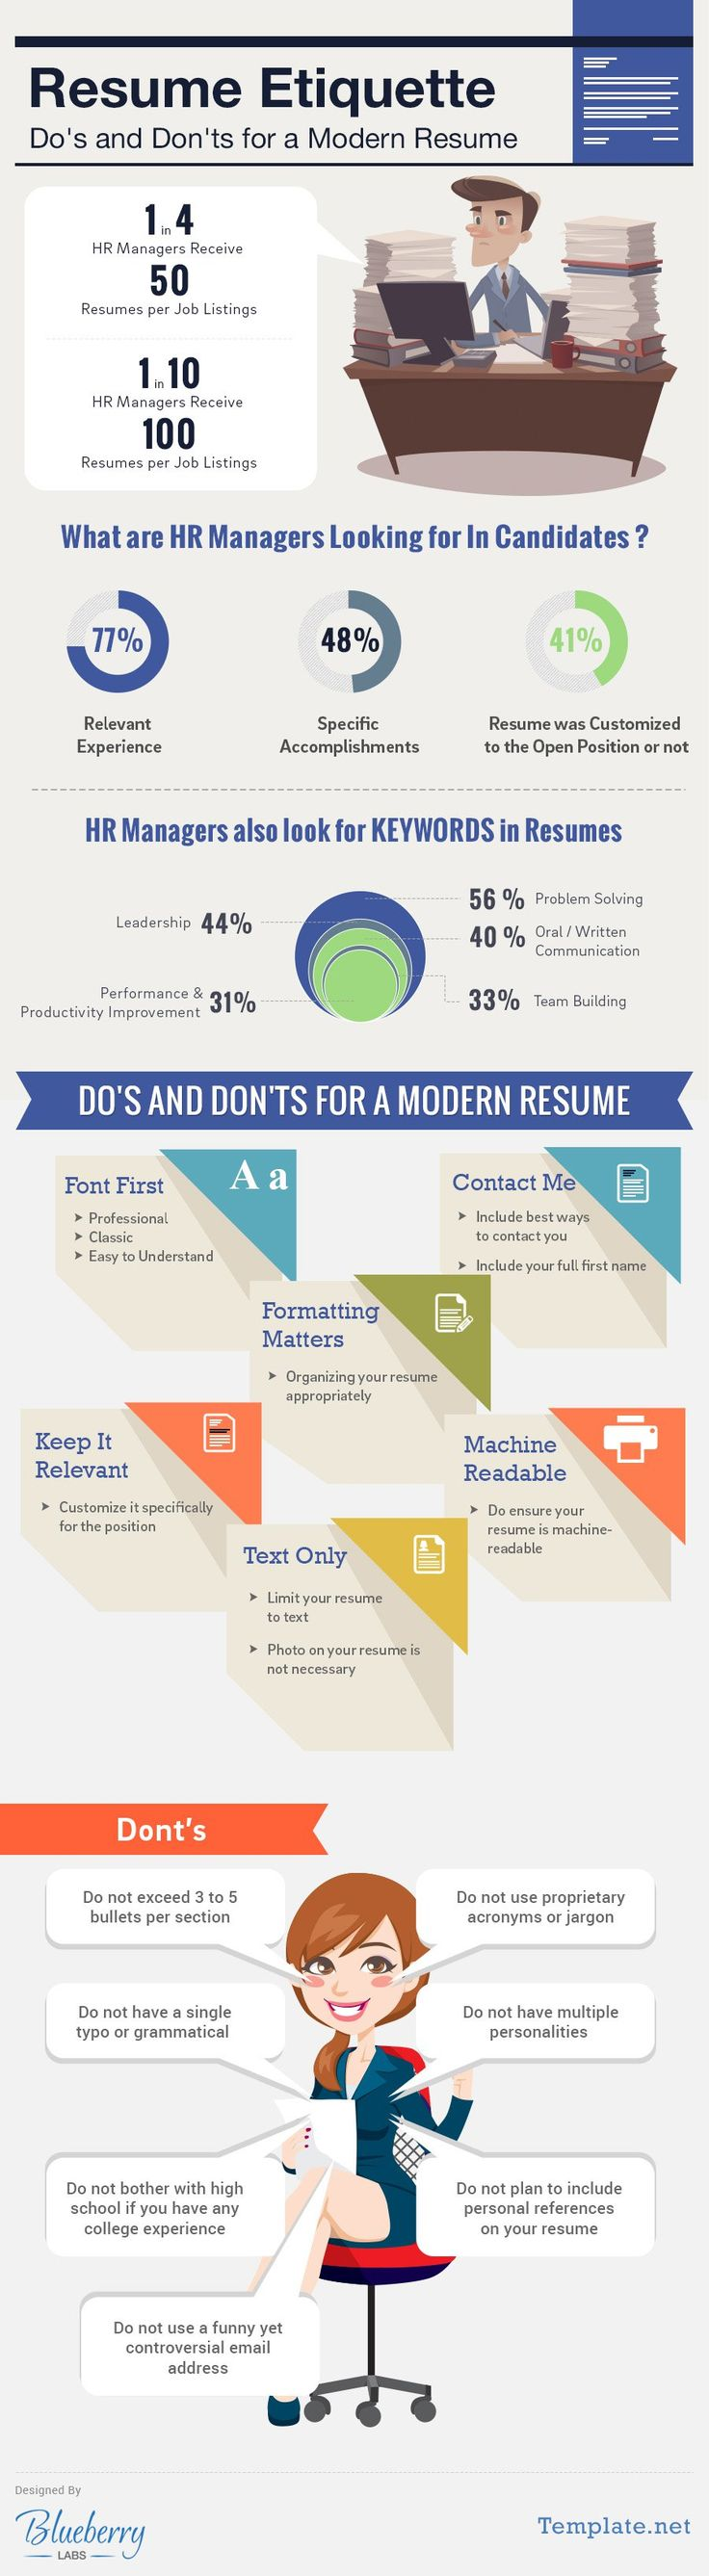 Famous 1 2 3 Nu Kapitel Resume Tall 1.5 Button Template Flat 10 Tips For Writing A Good Resume 100 Chart Template Old 1096 Template Blue1099 Template 25  Best Ideas About Resume Review On Pinterest | Resume Writing ..